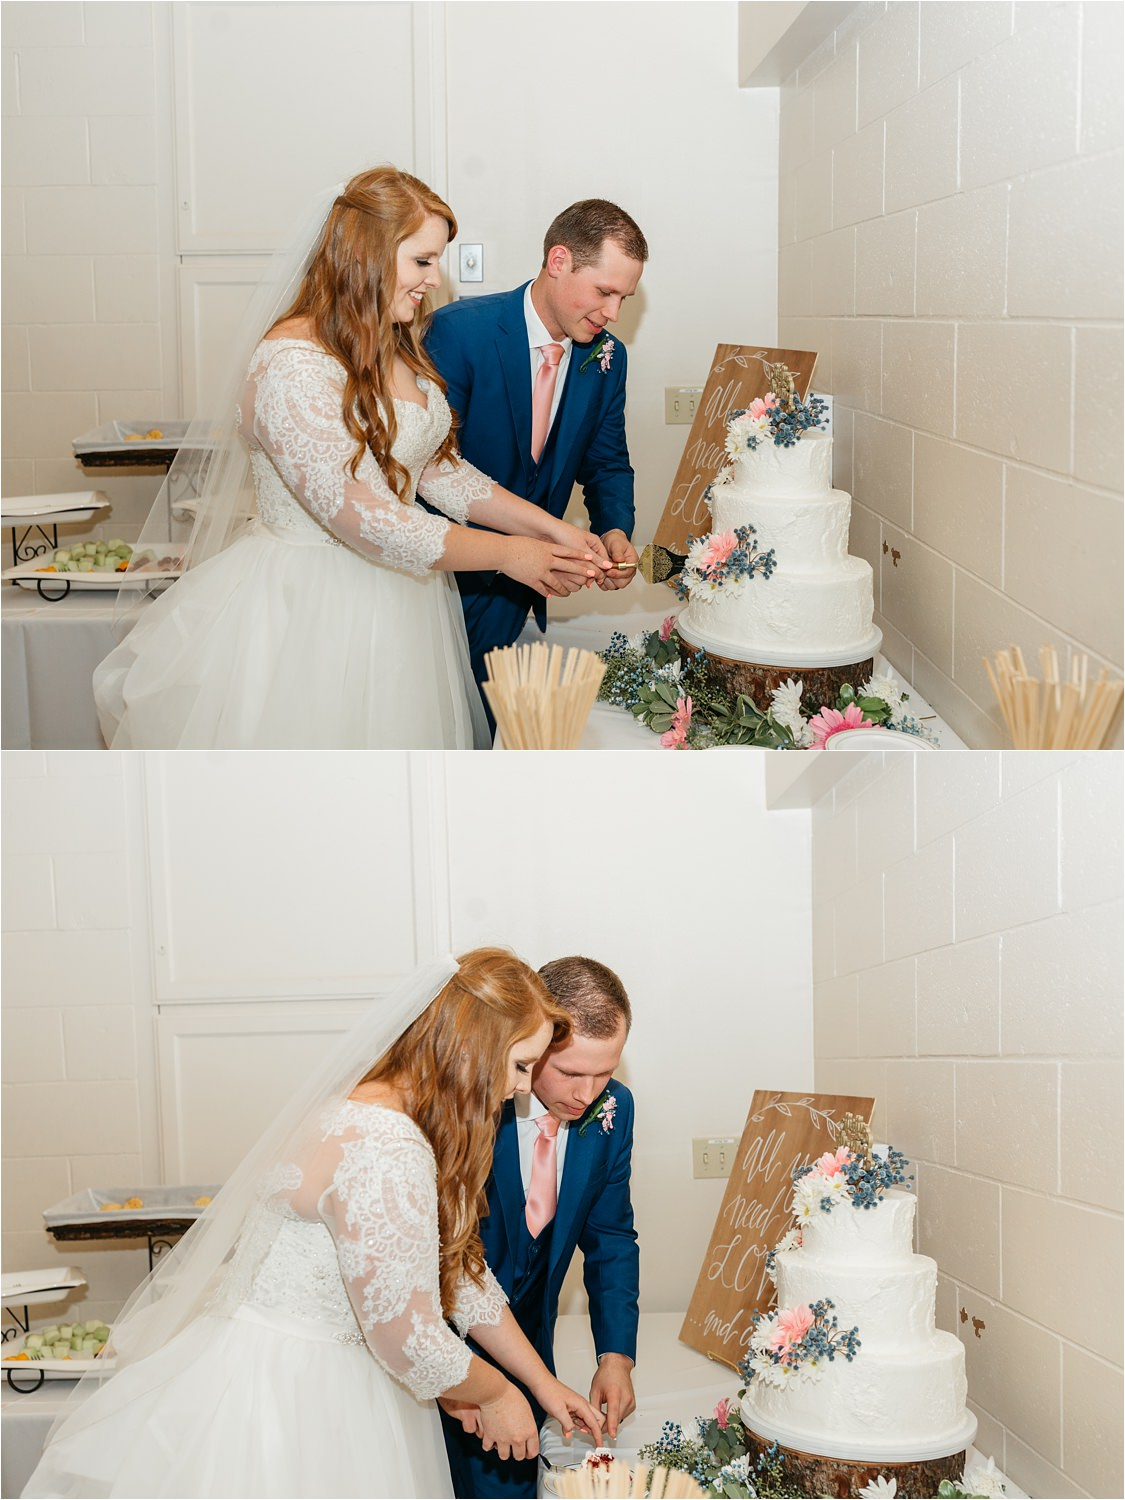 Bride and Groom cutting cake - https://brittneyhannonphotography.com